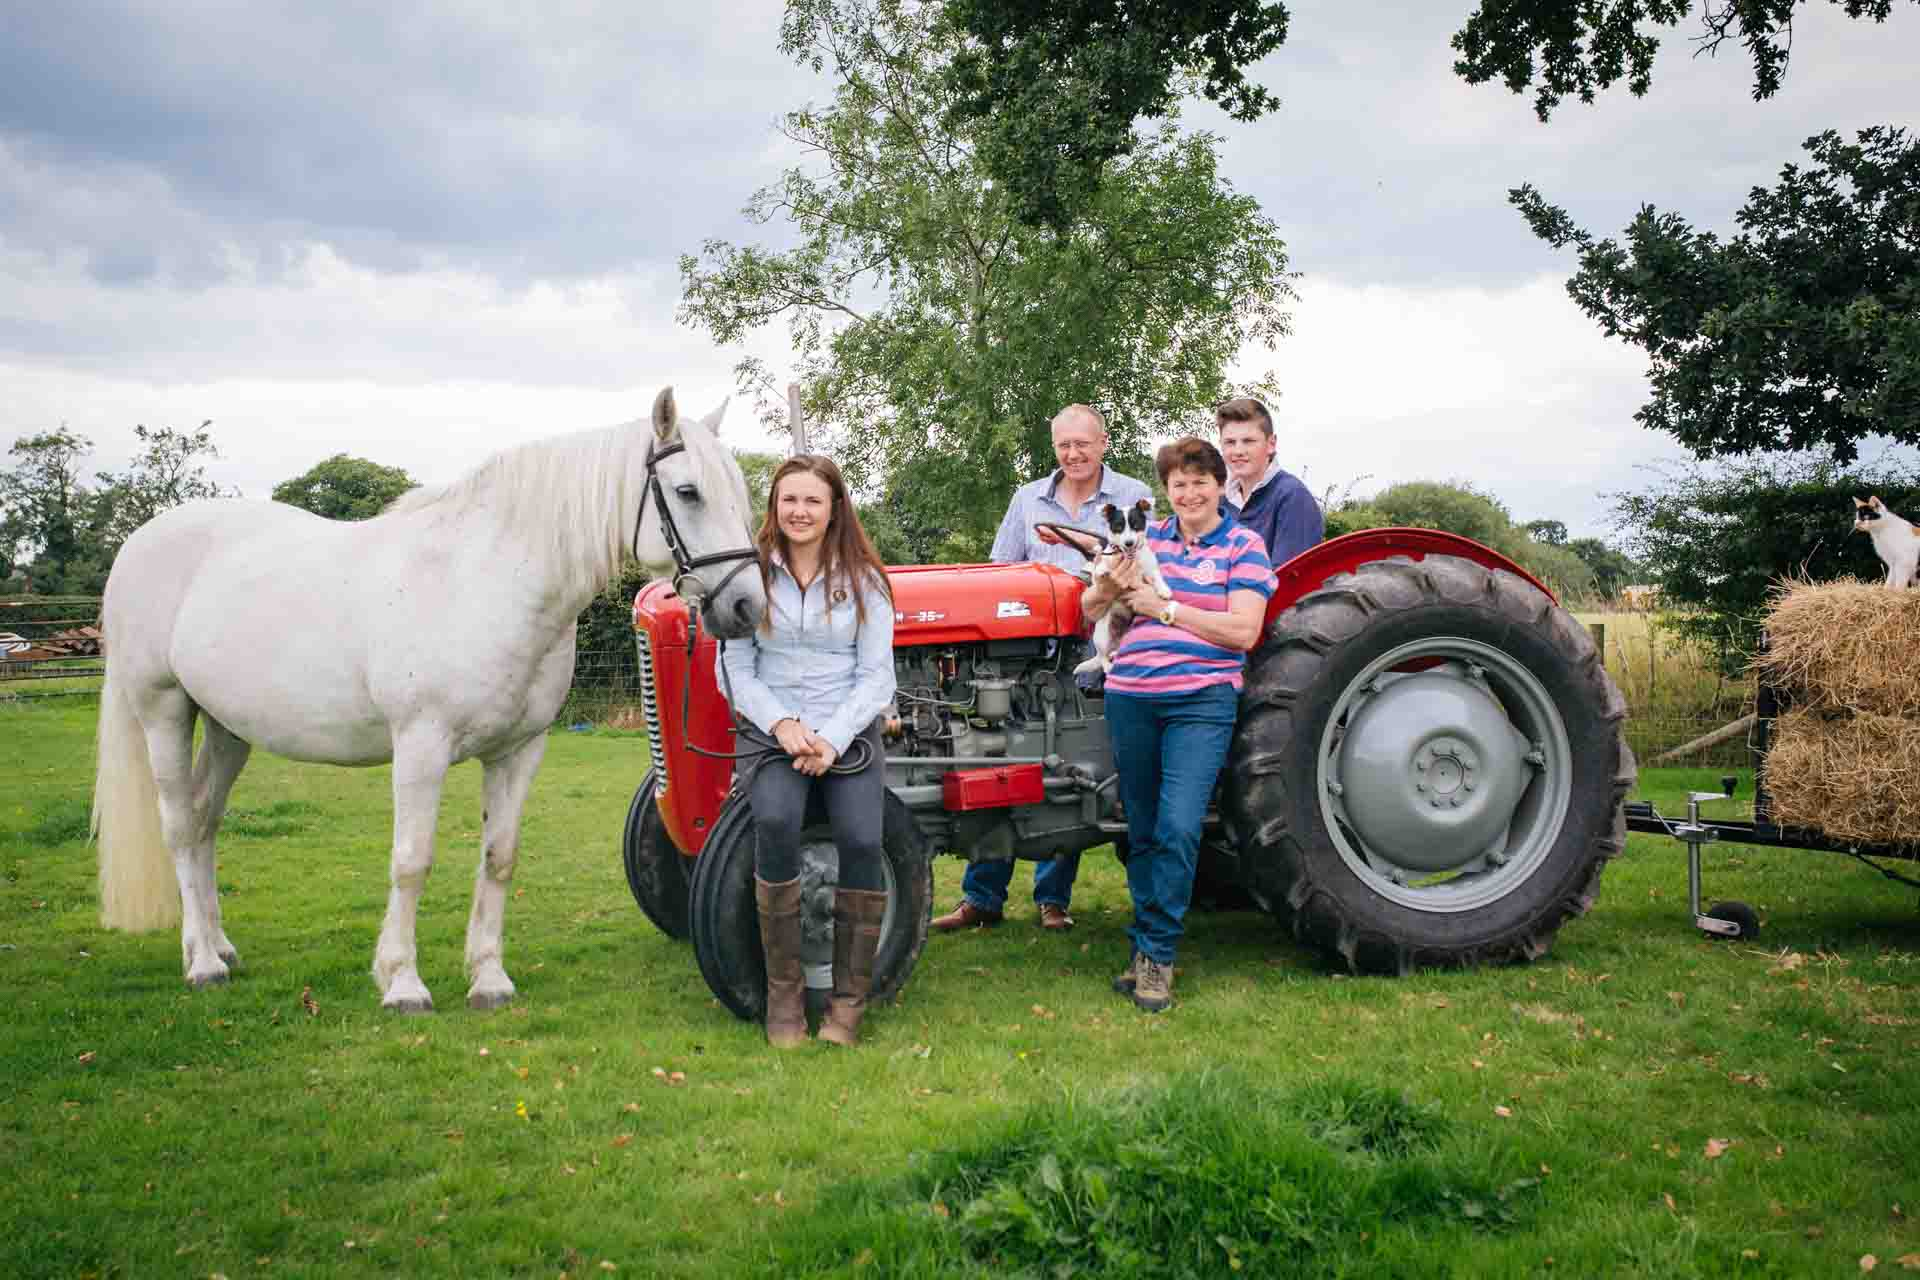 Joanna Eardley Photography - The Whole family. Family portraits with with the horse, dog and cat and vintage tractor